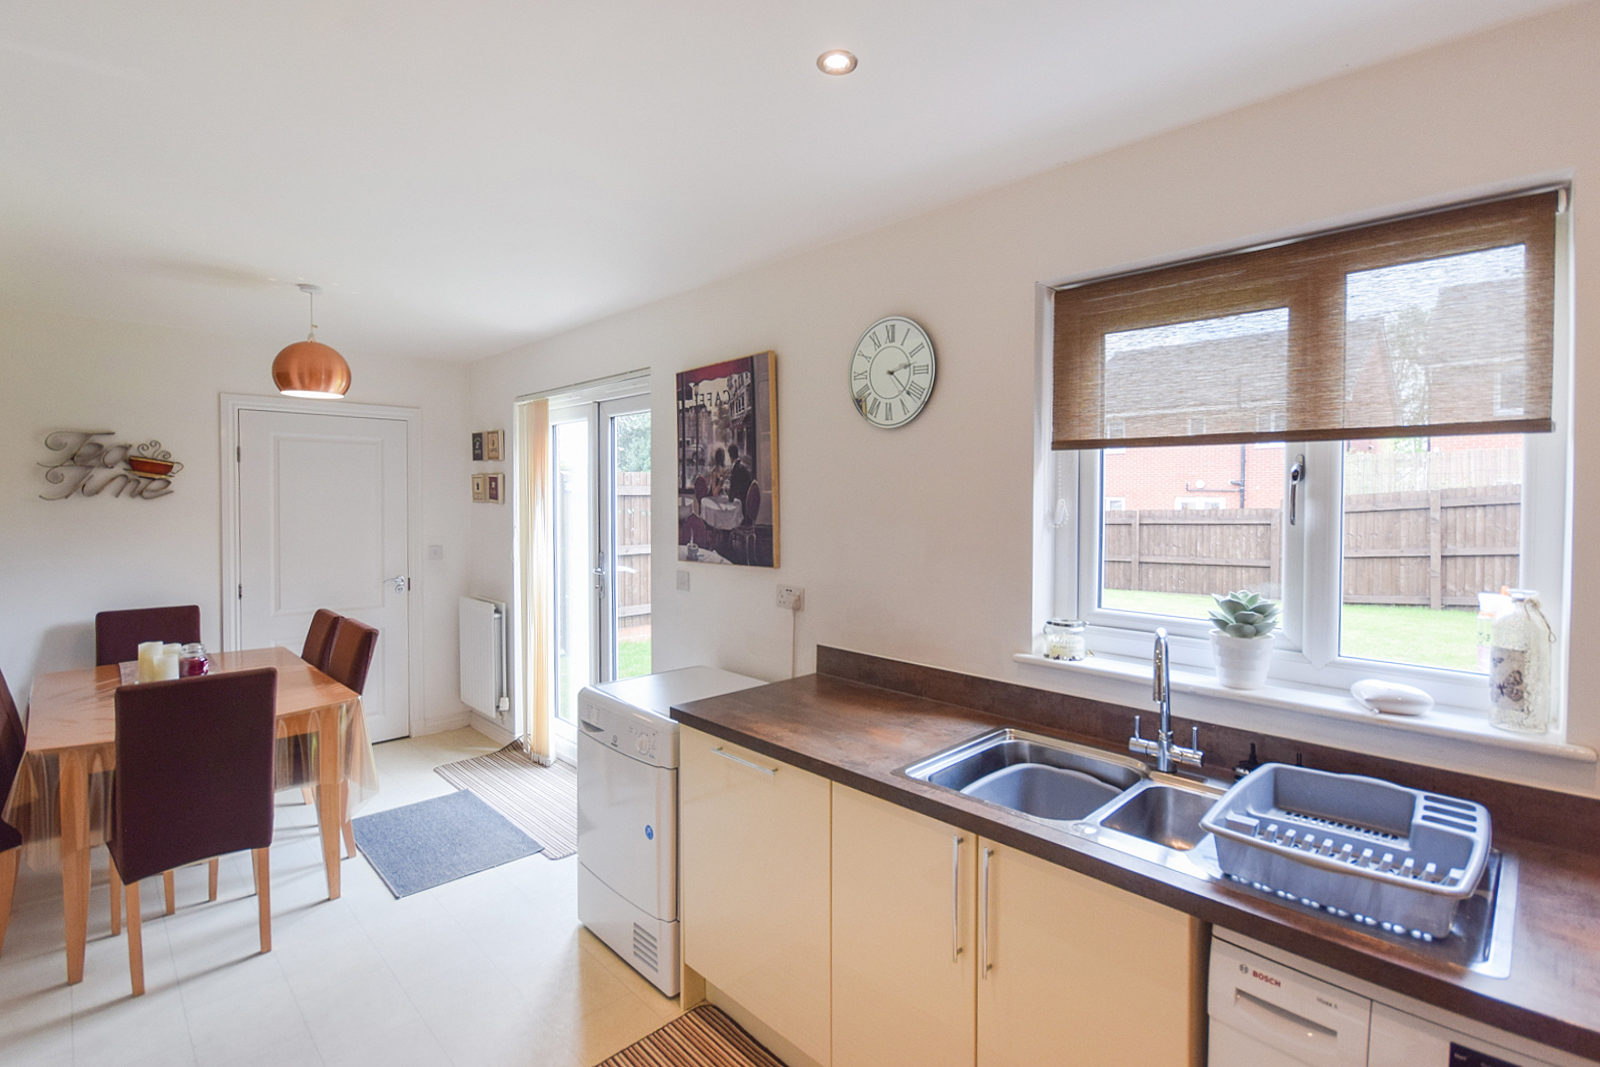 4 Bedroom House For Sale In Widnes